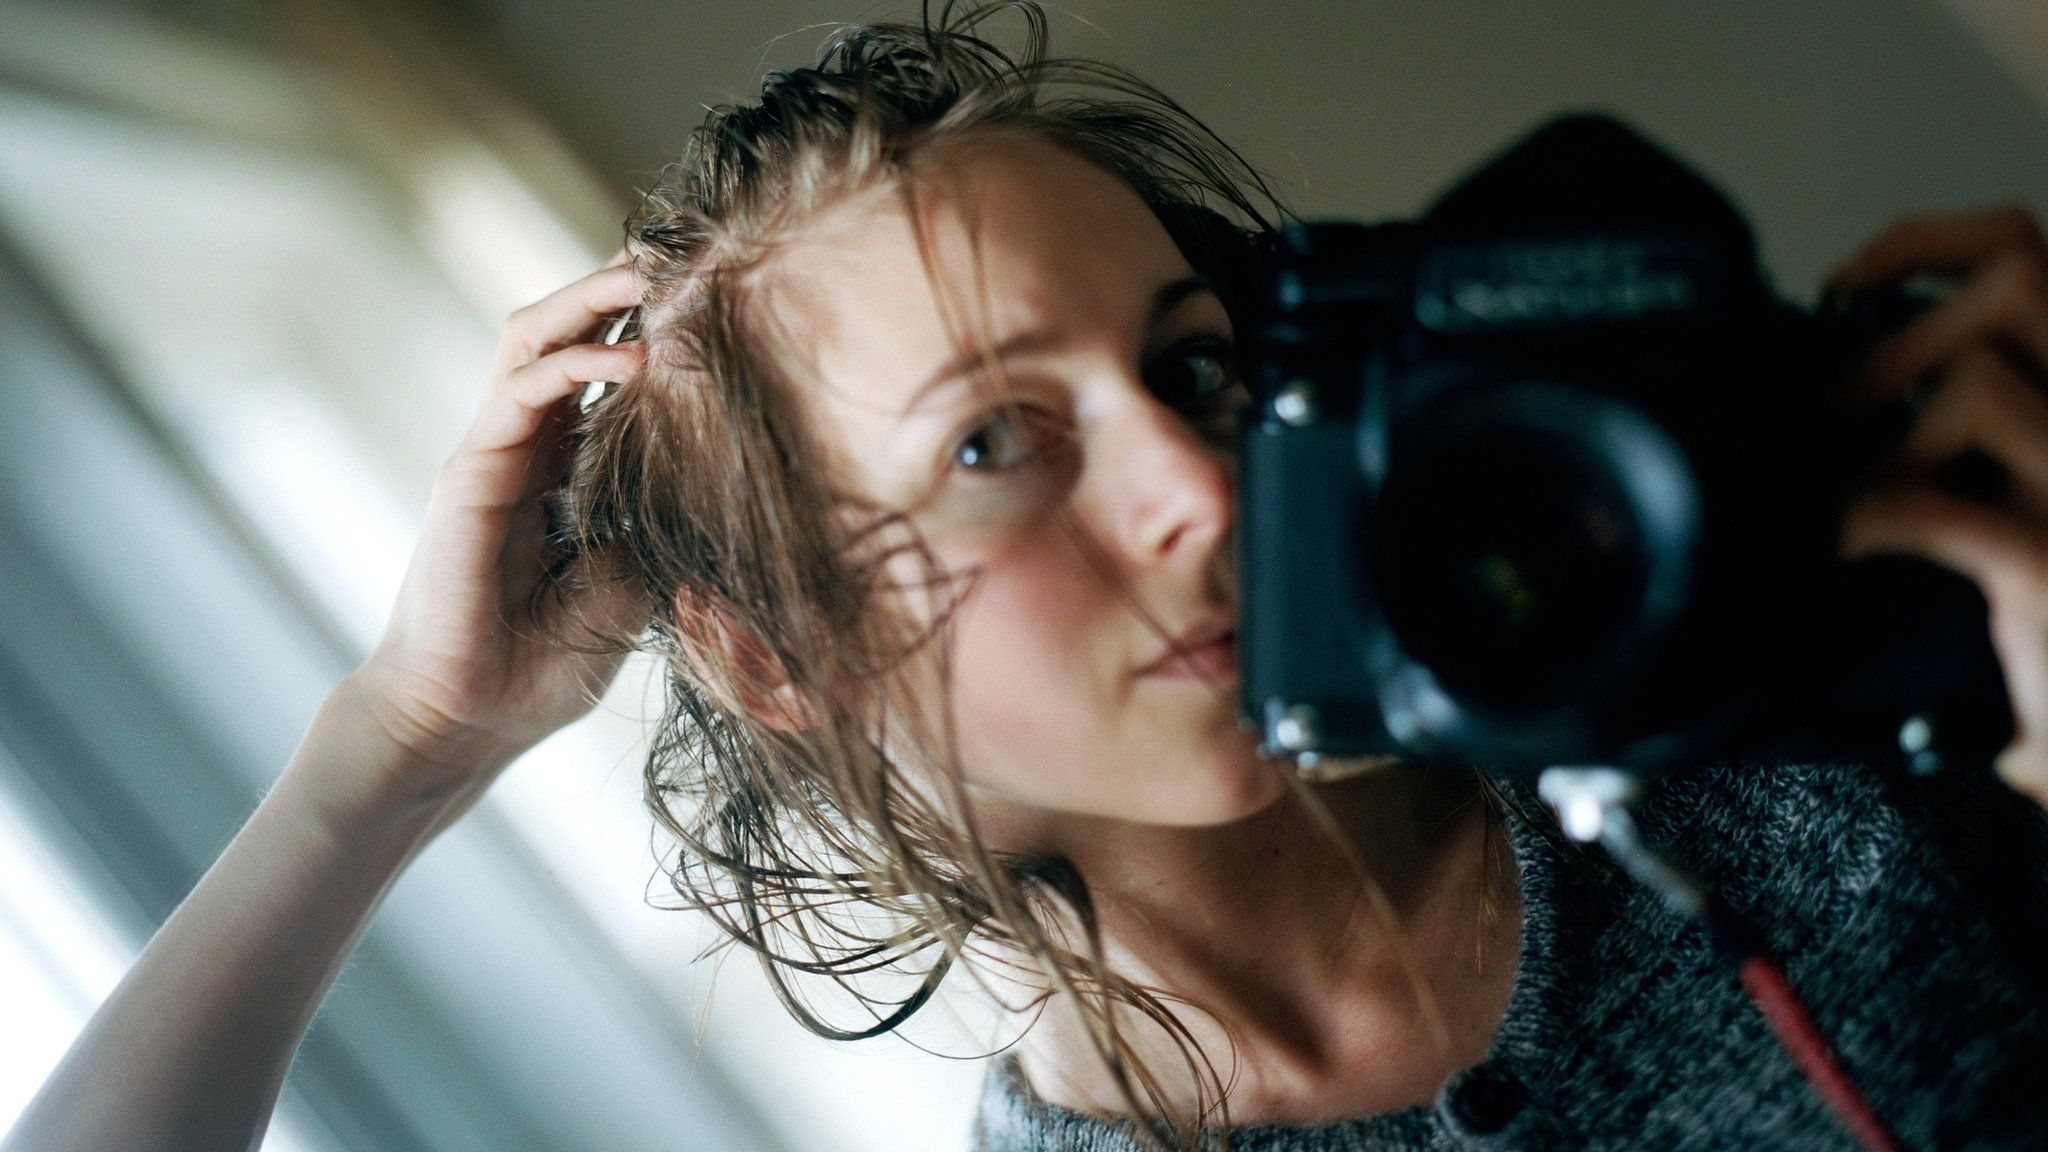 Carly Clarke photographs herself in the mirror at a time when her hair was falling out